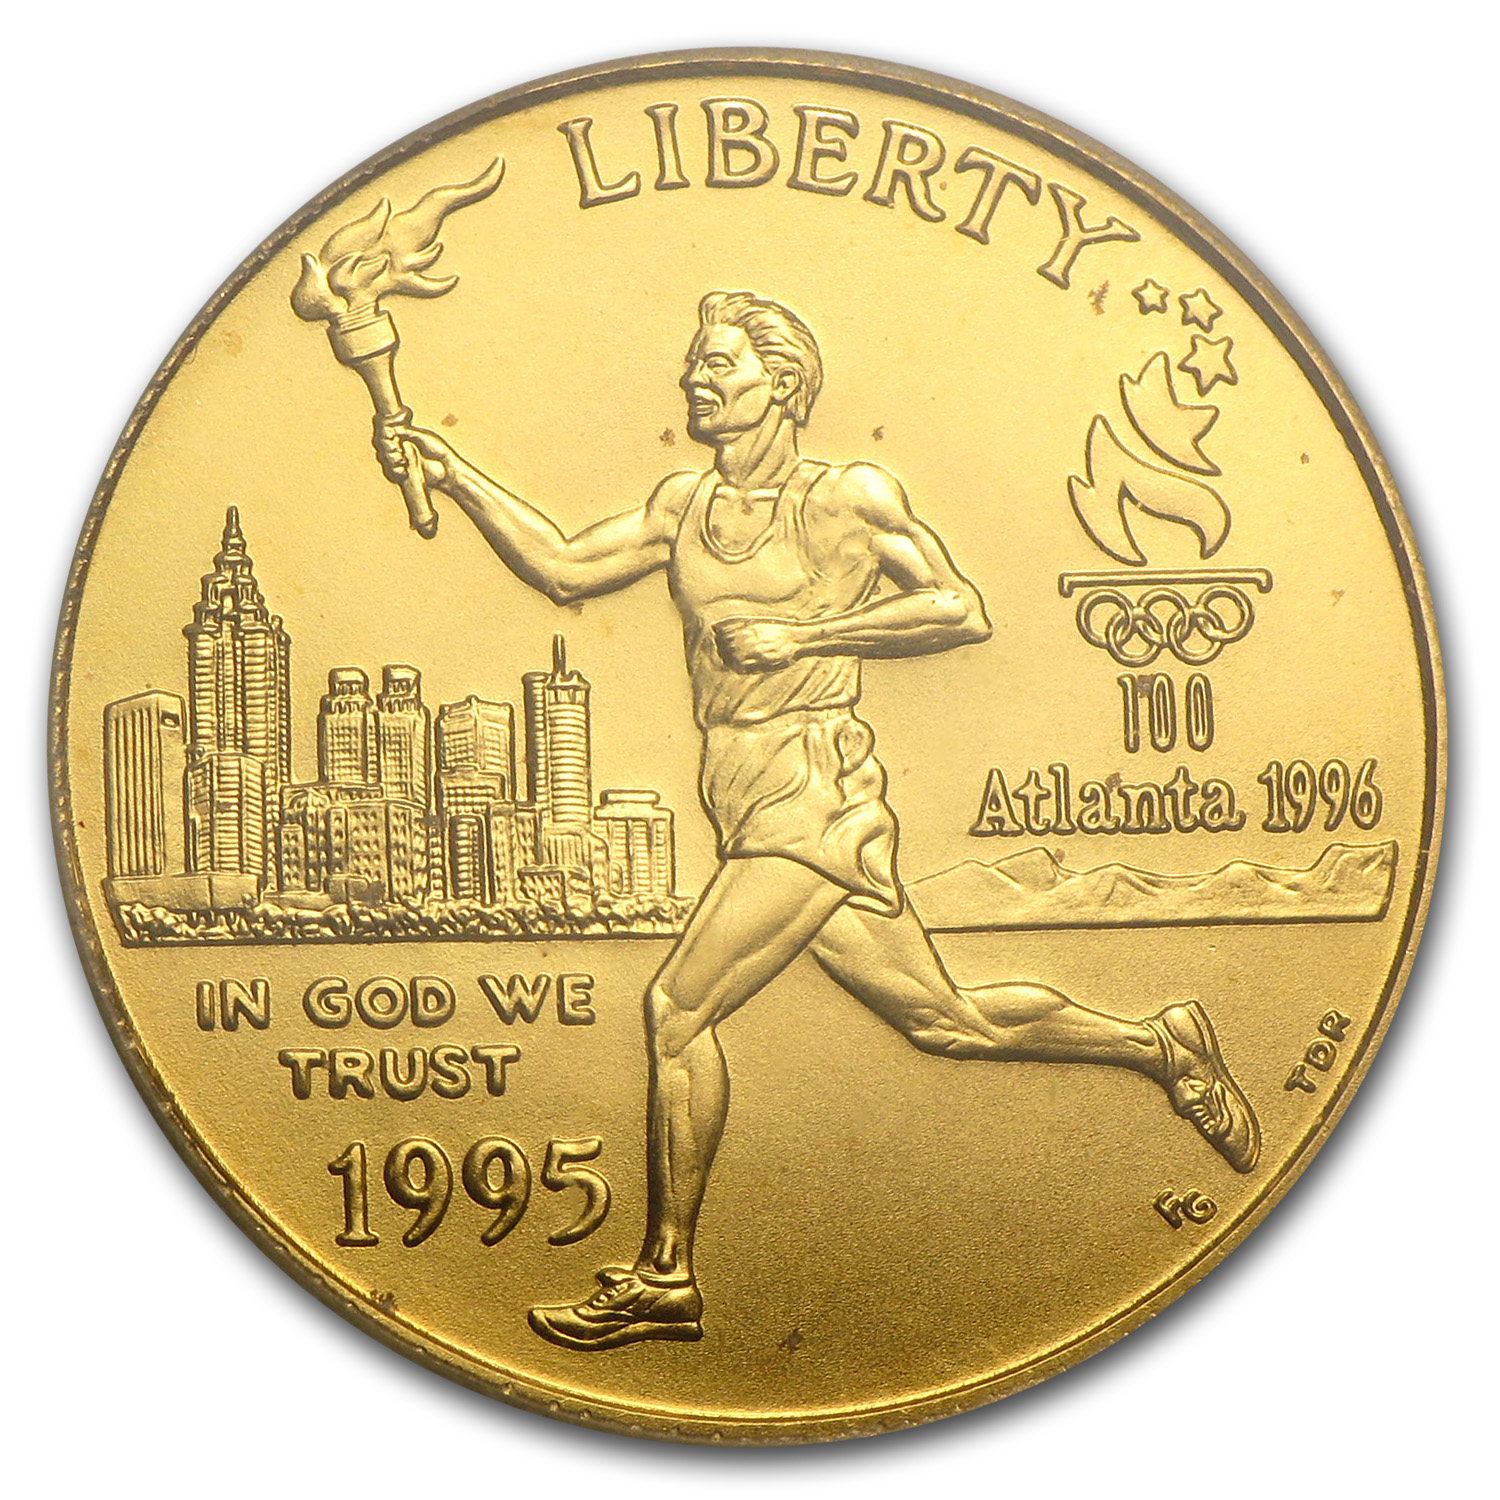 1995-W Olympic Torch Runner - $5 Gold Commemorative - MS-69 PCGS